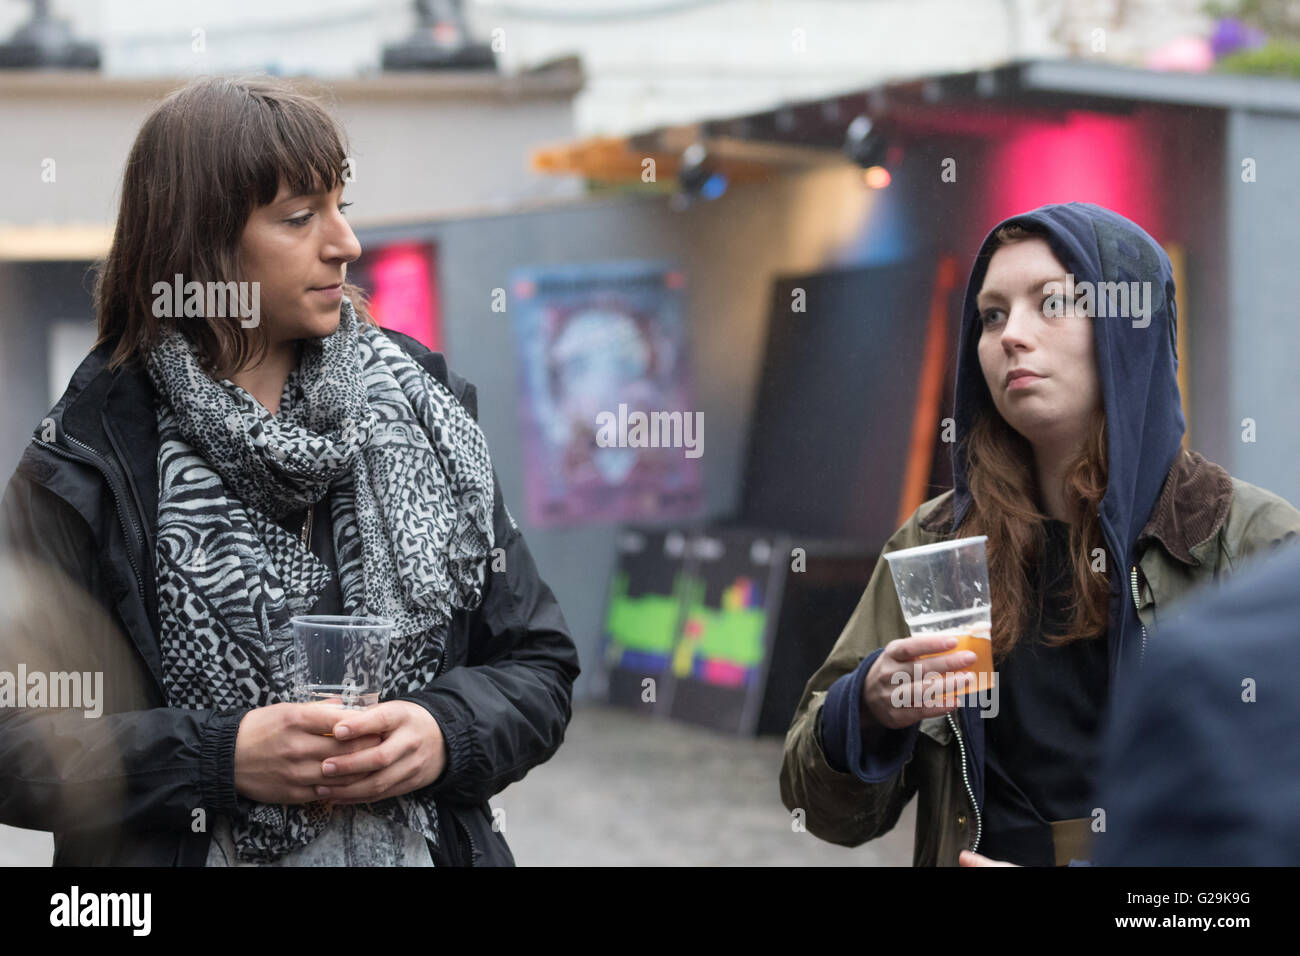 Edinburgh, Scotland. 26th May, 2016. Preview Night organisers talking/giving a tour at Hidden Doo Credit:  Tracey - Stock Image